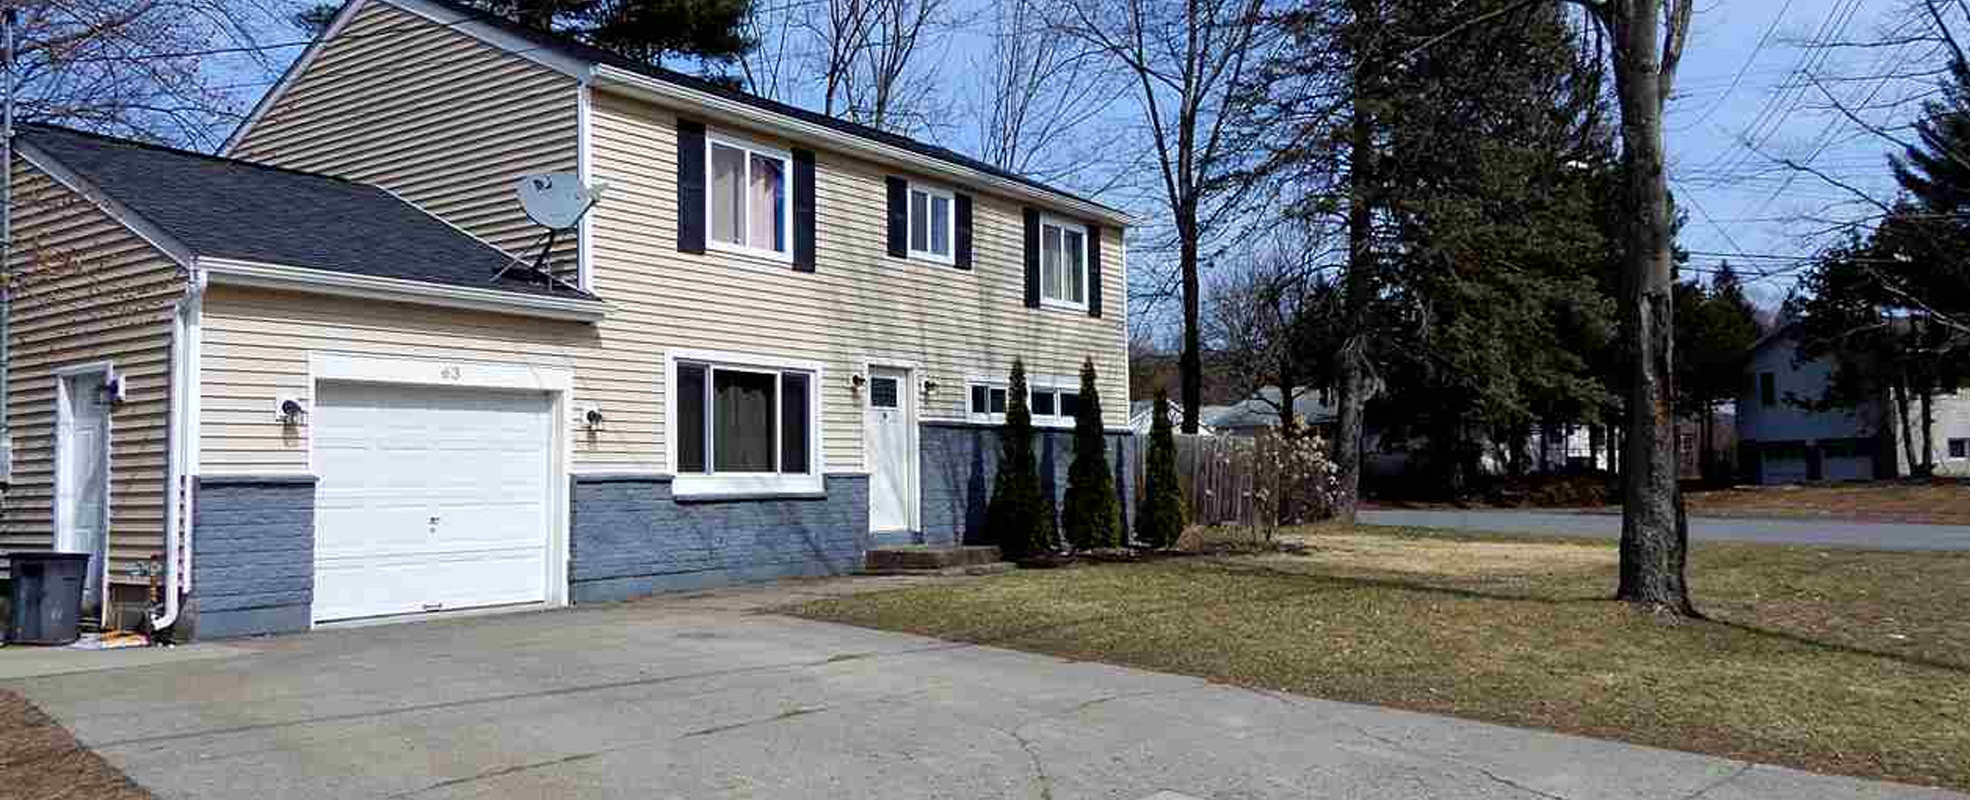 Featured:  63 Jones Dr, Colonie, NY 12309